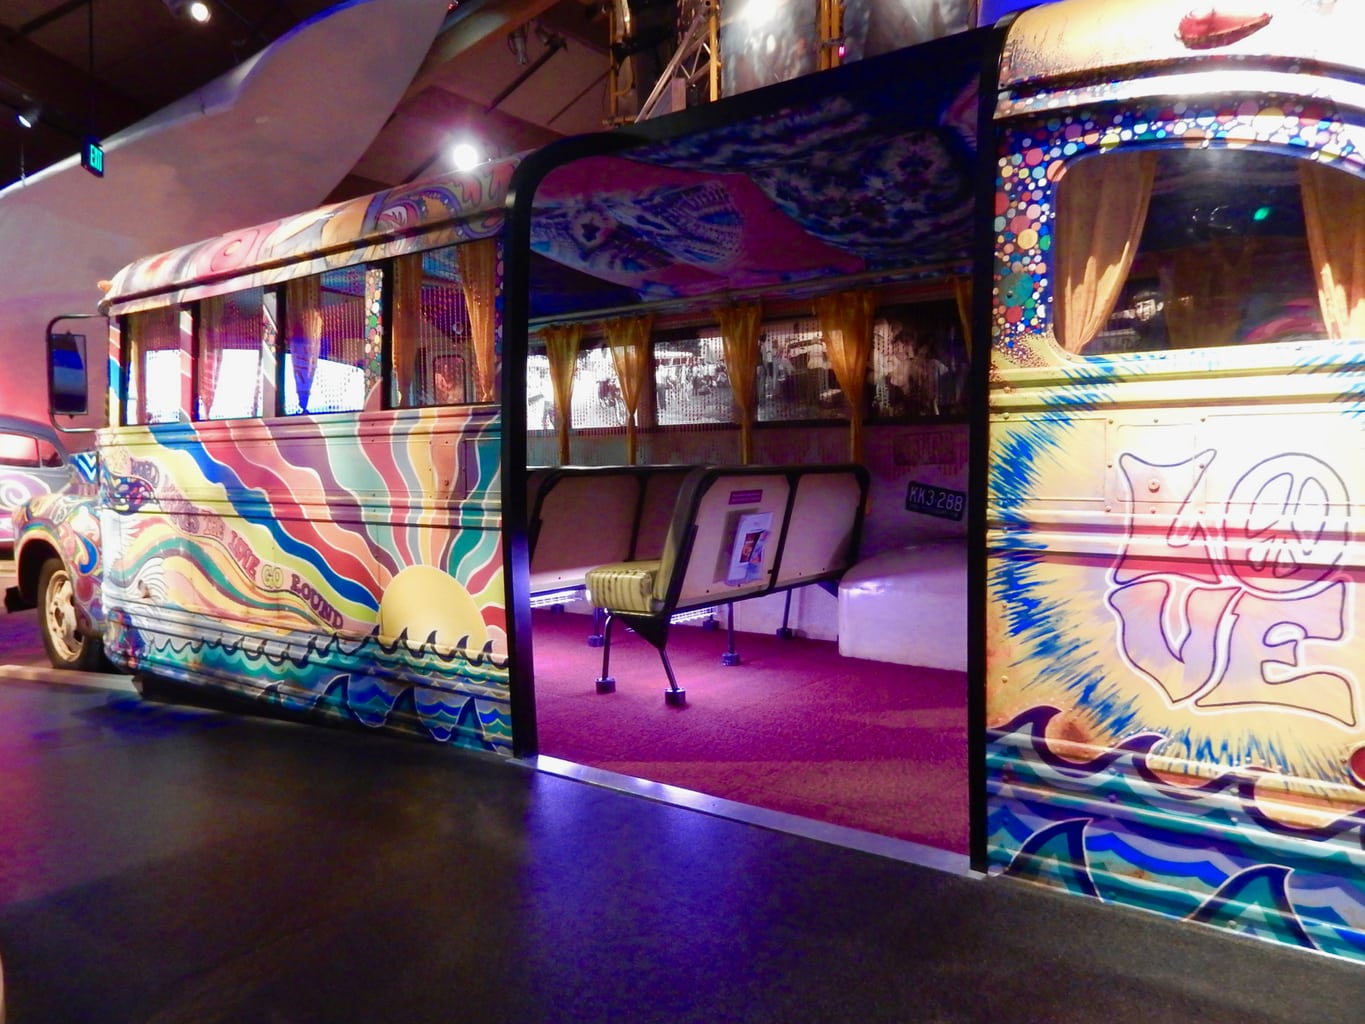 Magic Bus, Bethel Woods Museum, Bethel NY